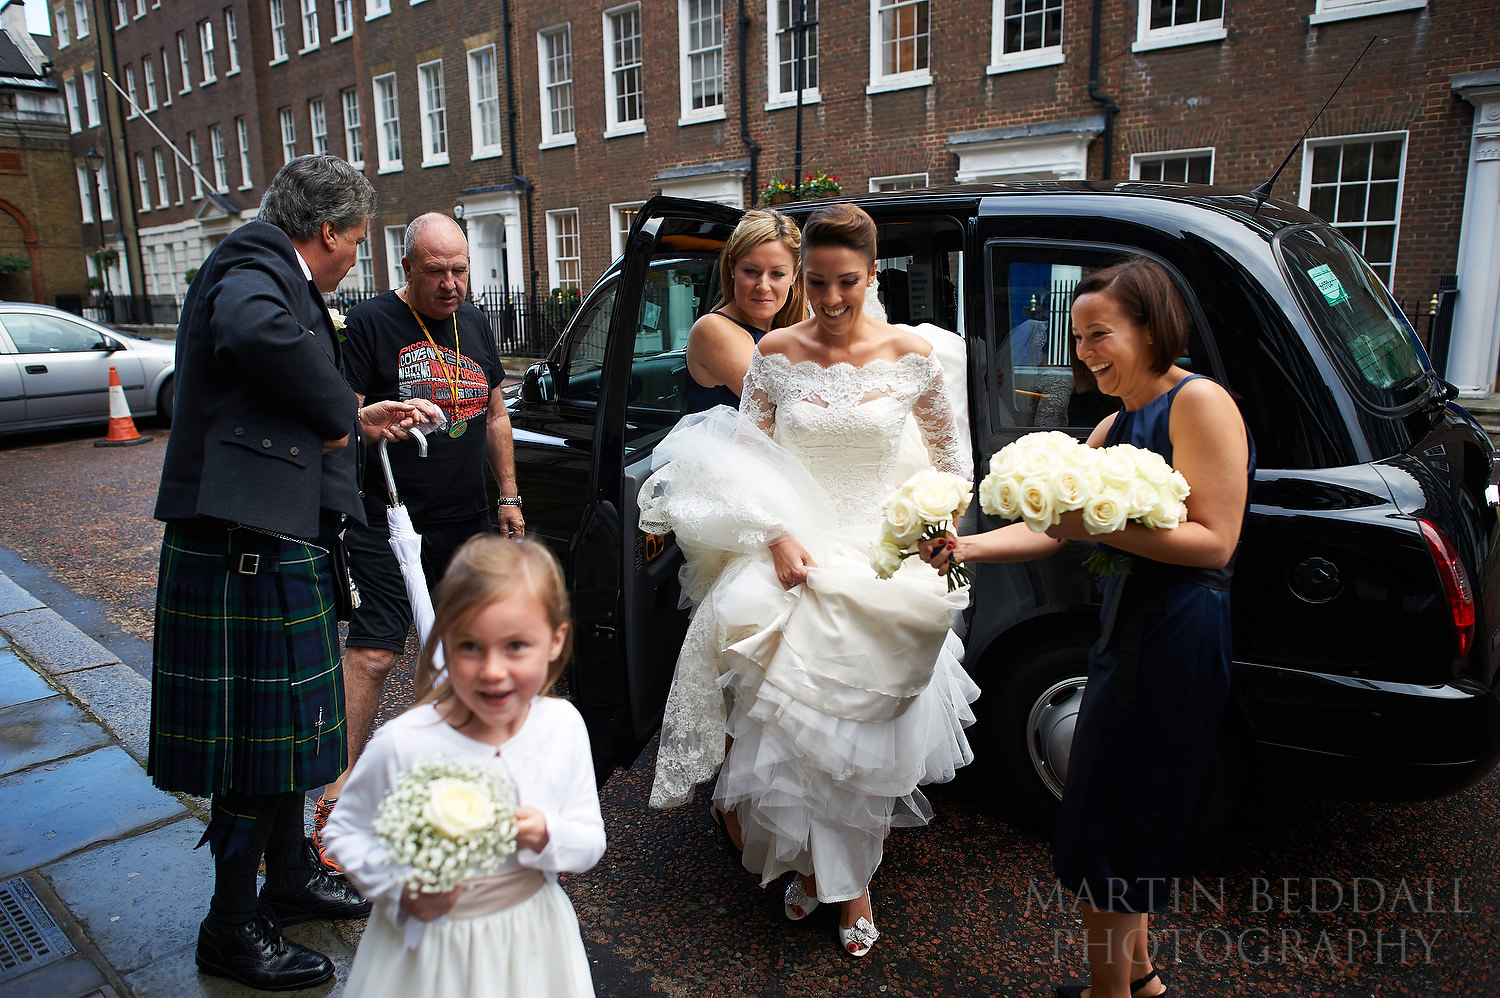 Bride arrives at St Etheldreda's church in a black taxi cab